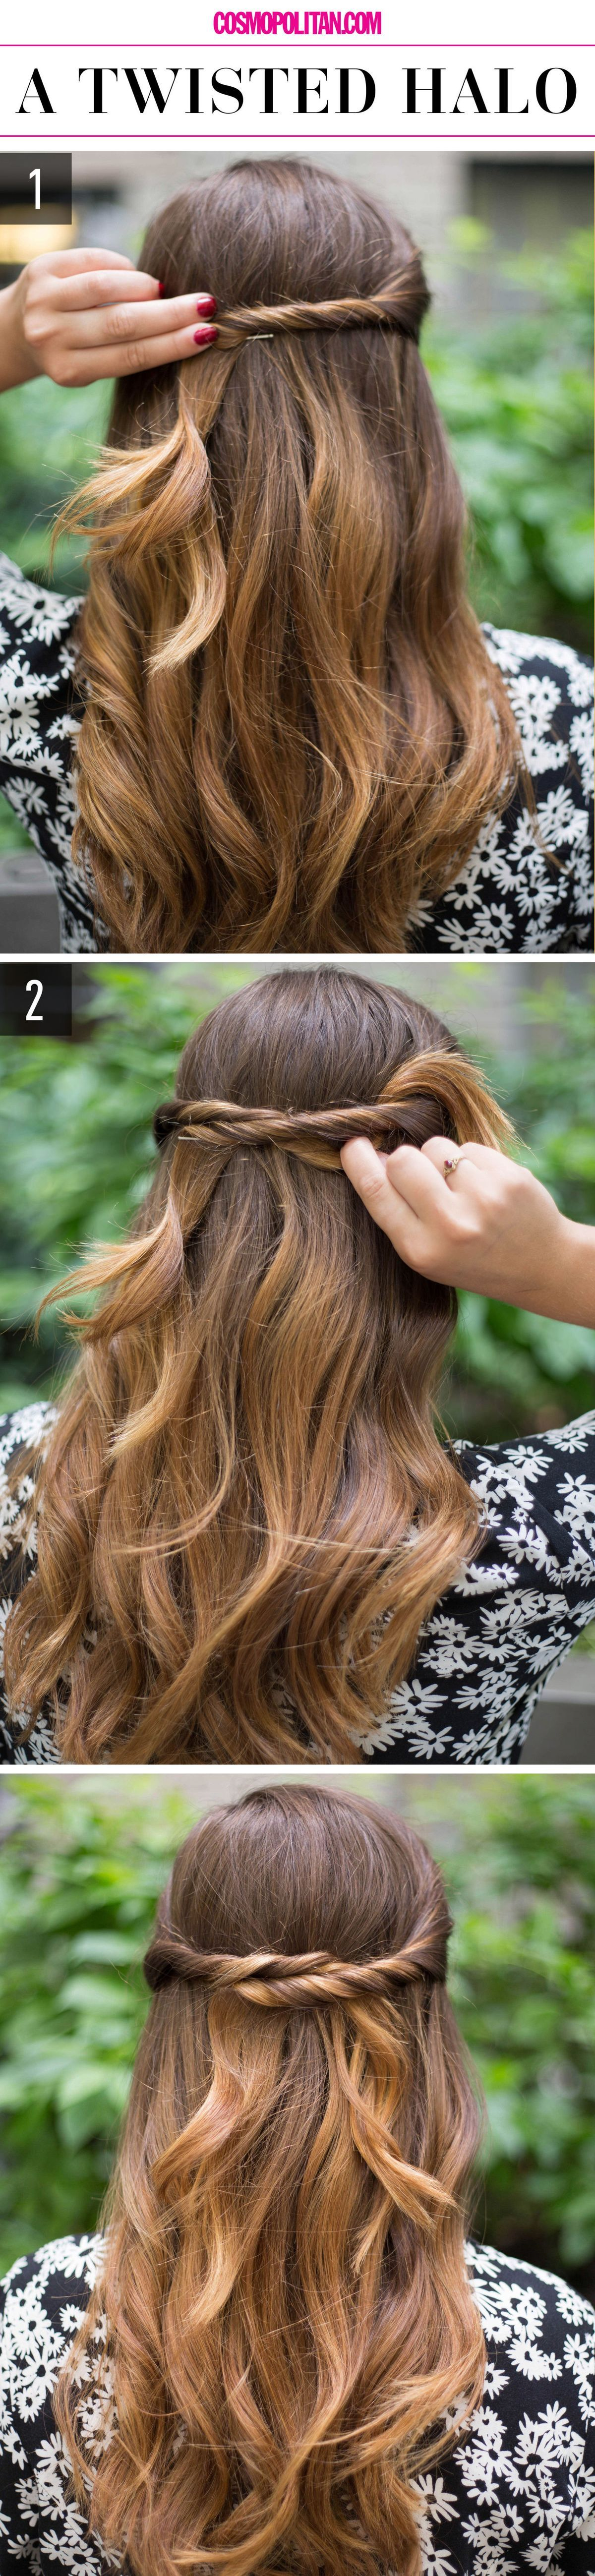 supereasy hairstyles for lazy girls who canut even future